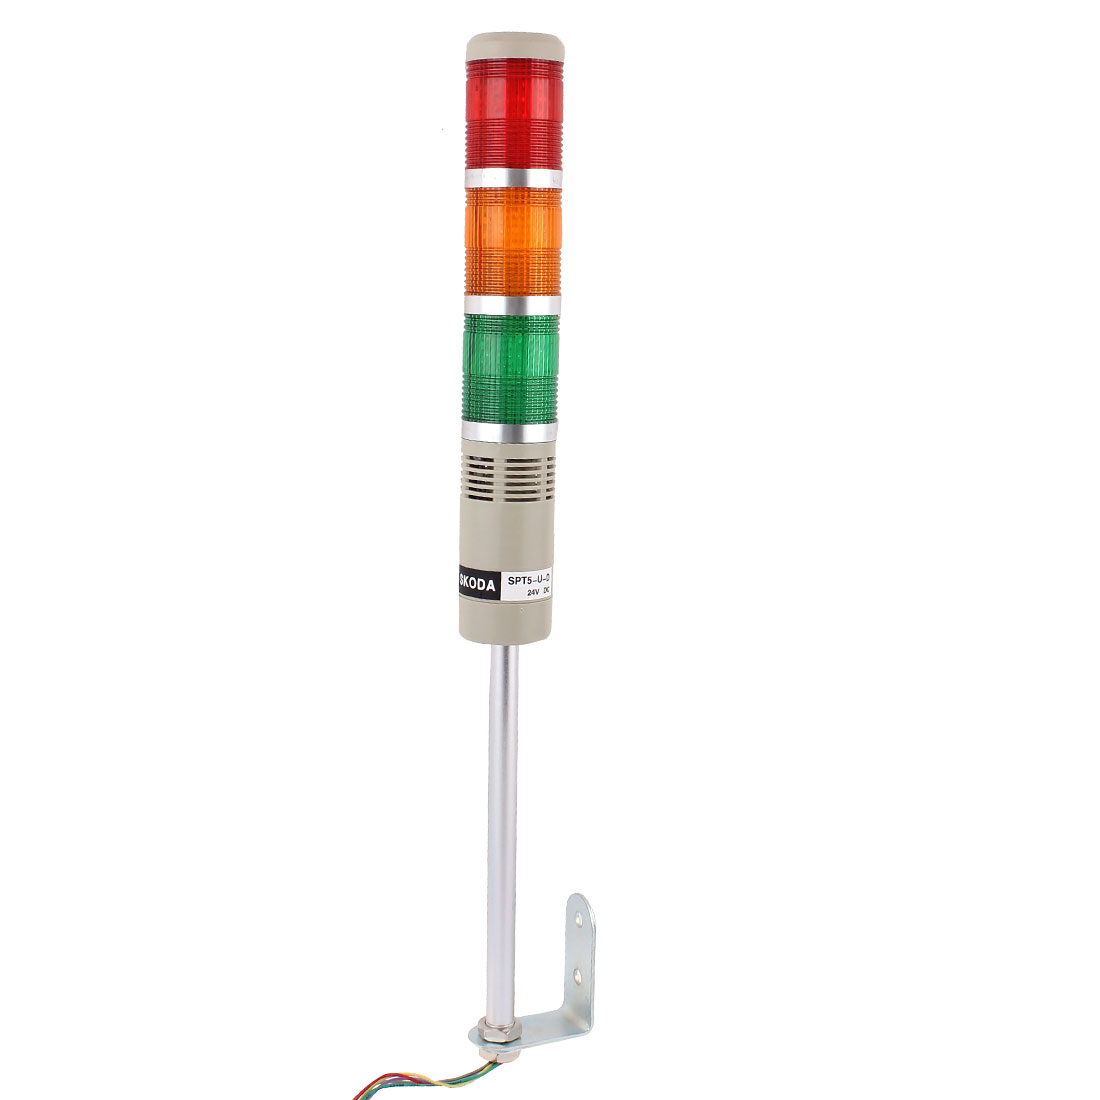 DC 24V Industrial Red Yellow Green LED Signal Tower Lamp Alarm Warning Light